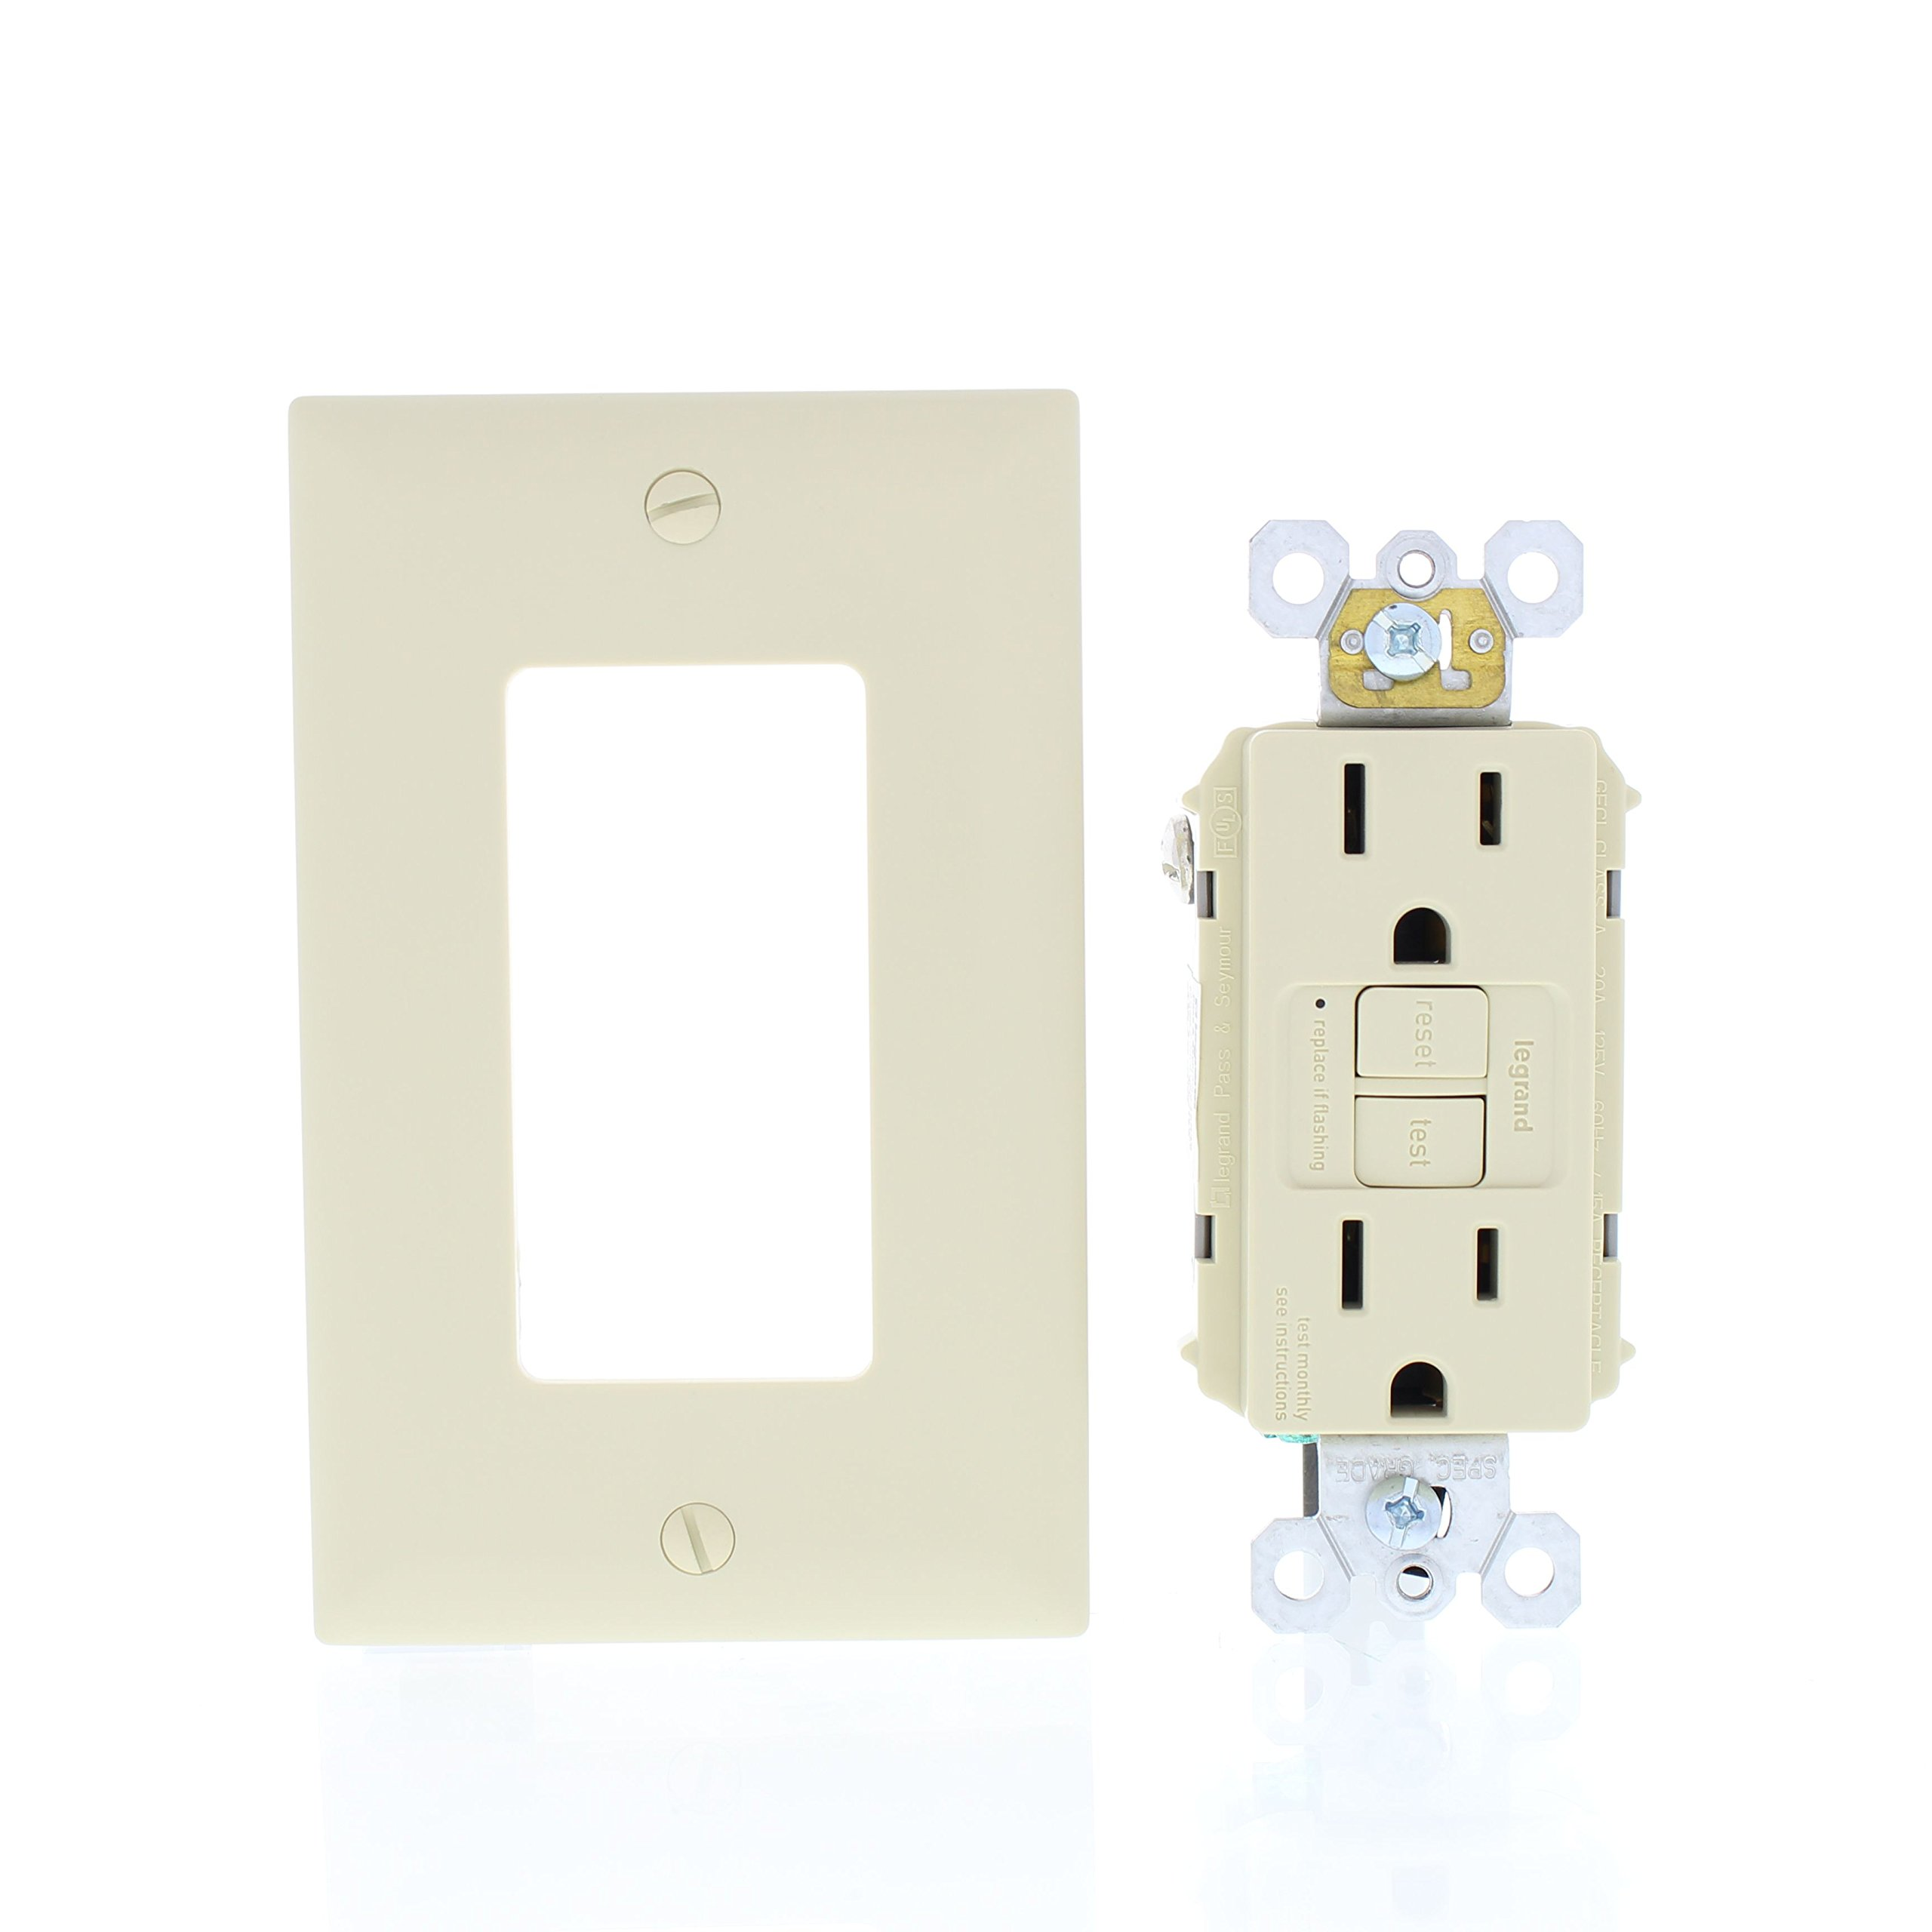 Legrand - Pass & Seymour radiant 1597ICC10 15 Amp Self-Test GFCI Outlet, Ivory